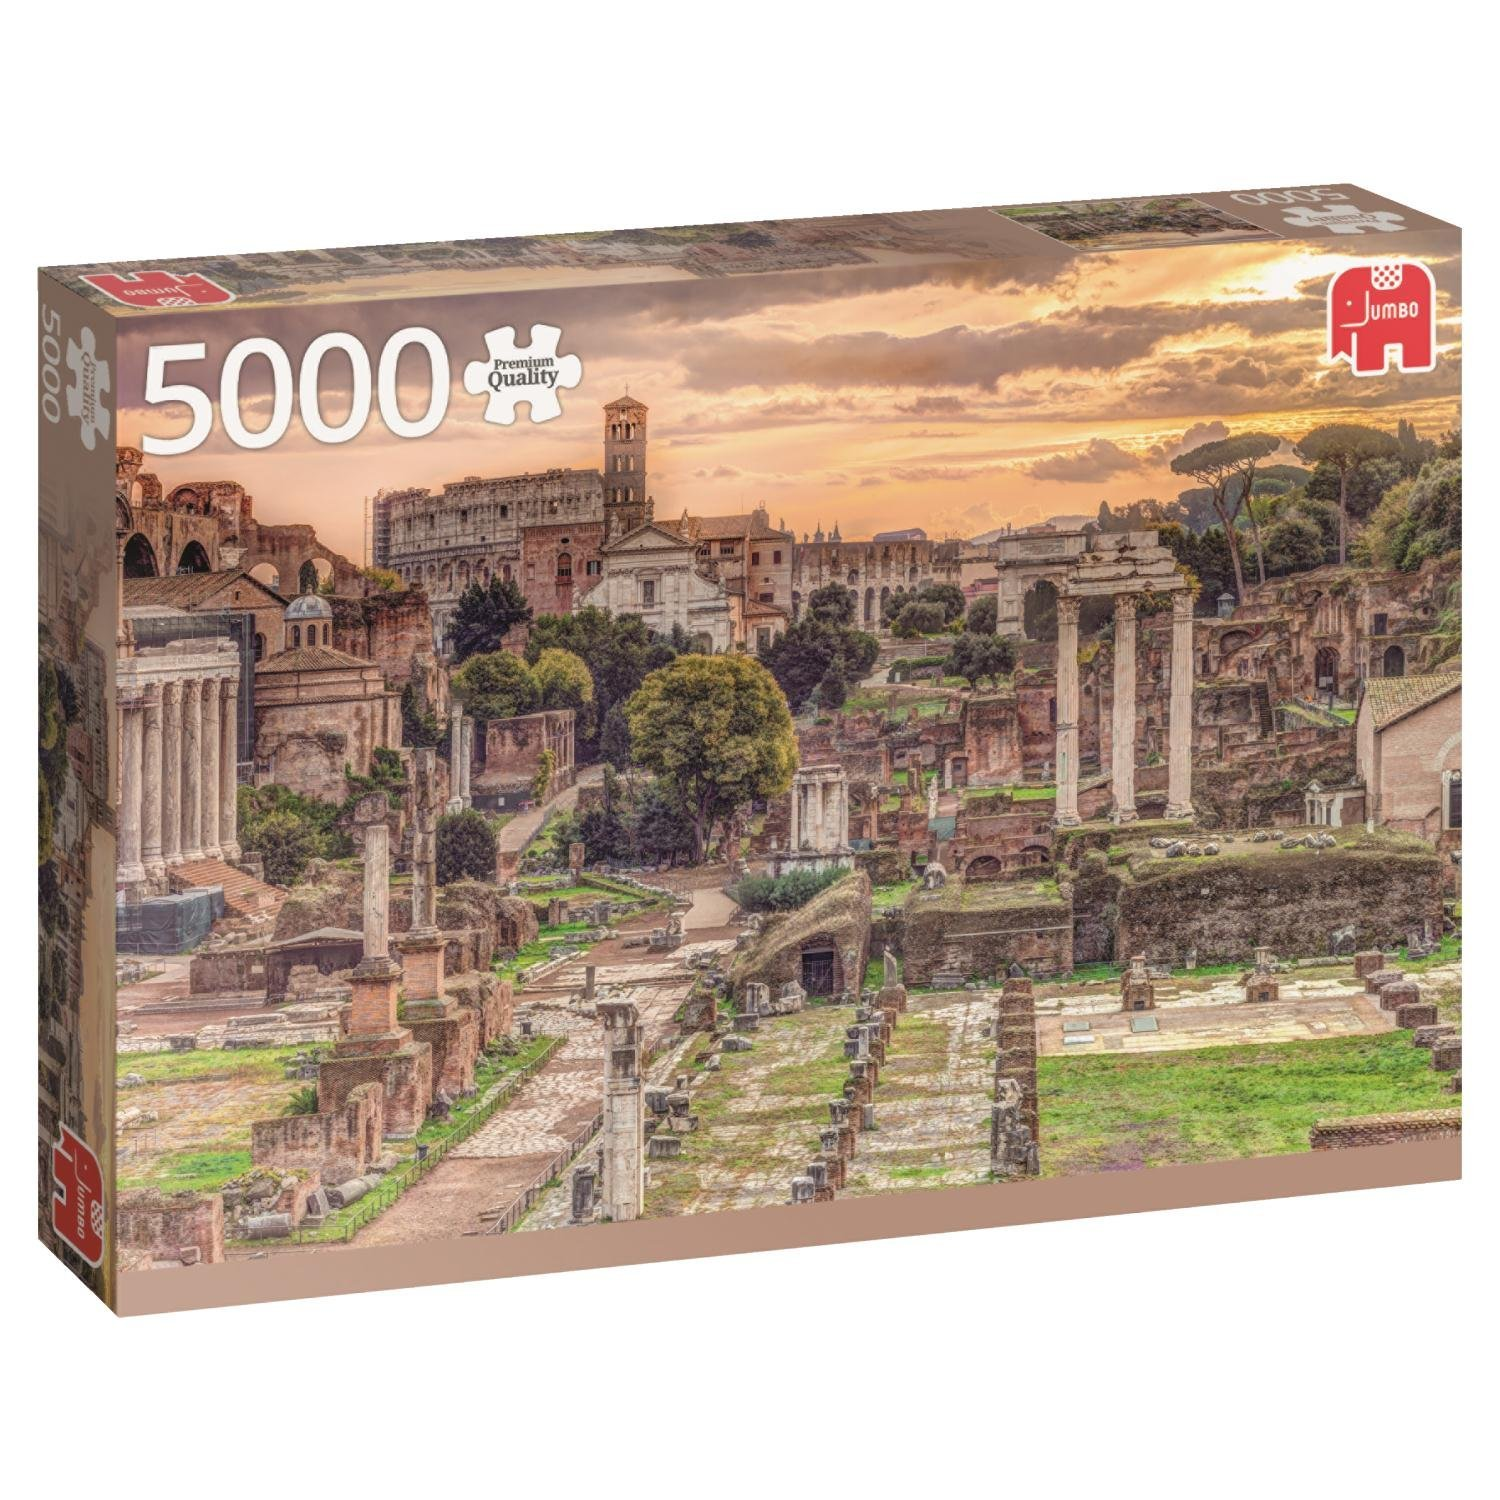 forum romanum 5000 teile jumbo puzzle acheter en ligne. Black Bedroom Furniture Sets. Home Design Ideas